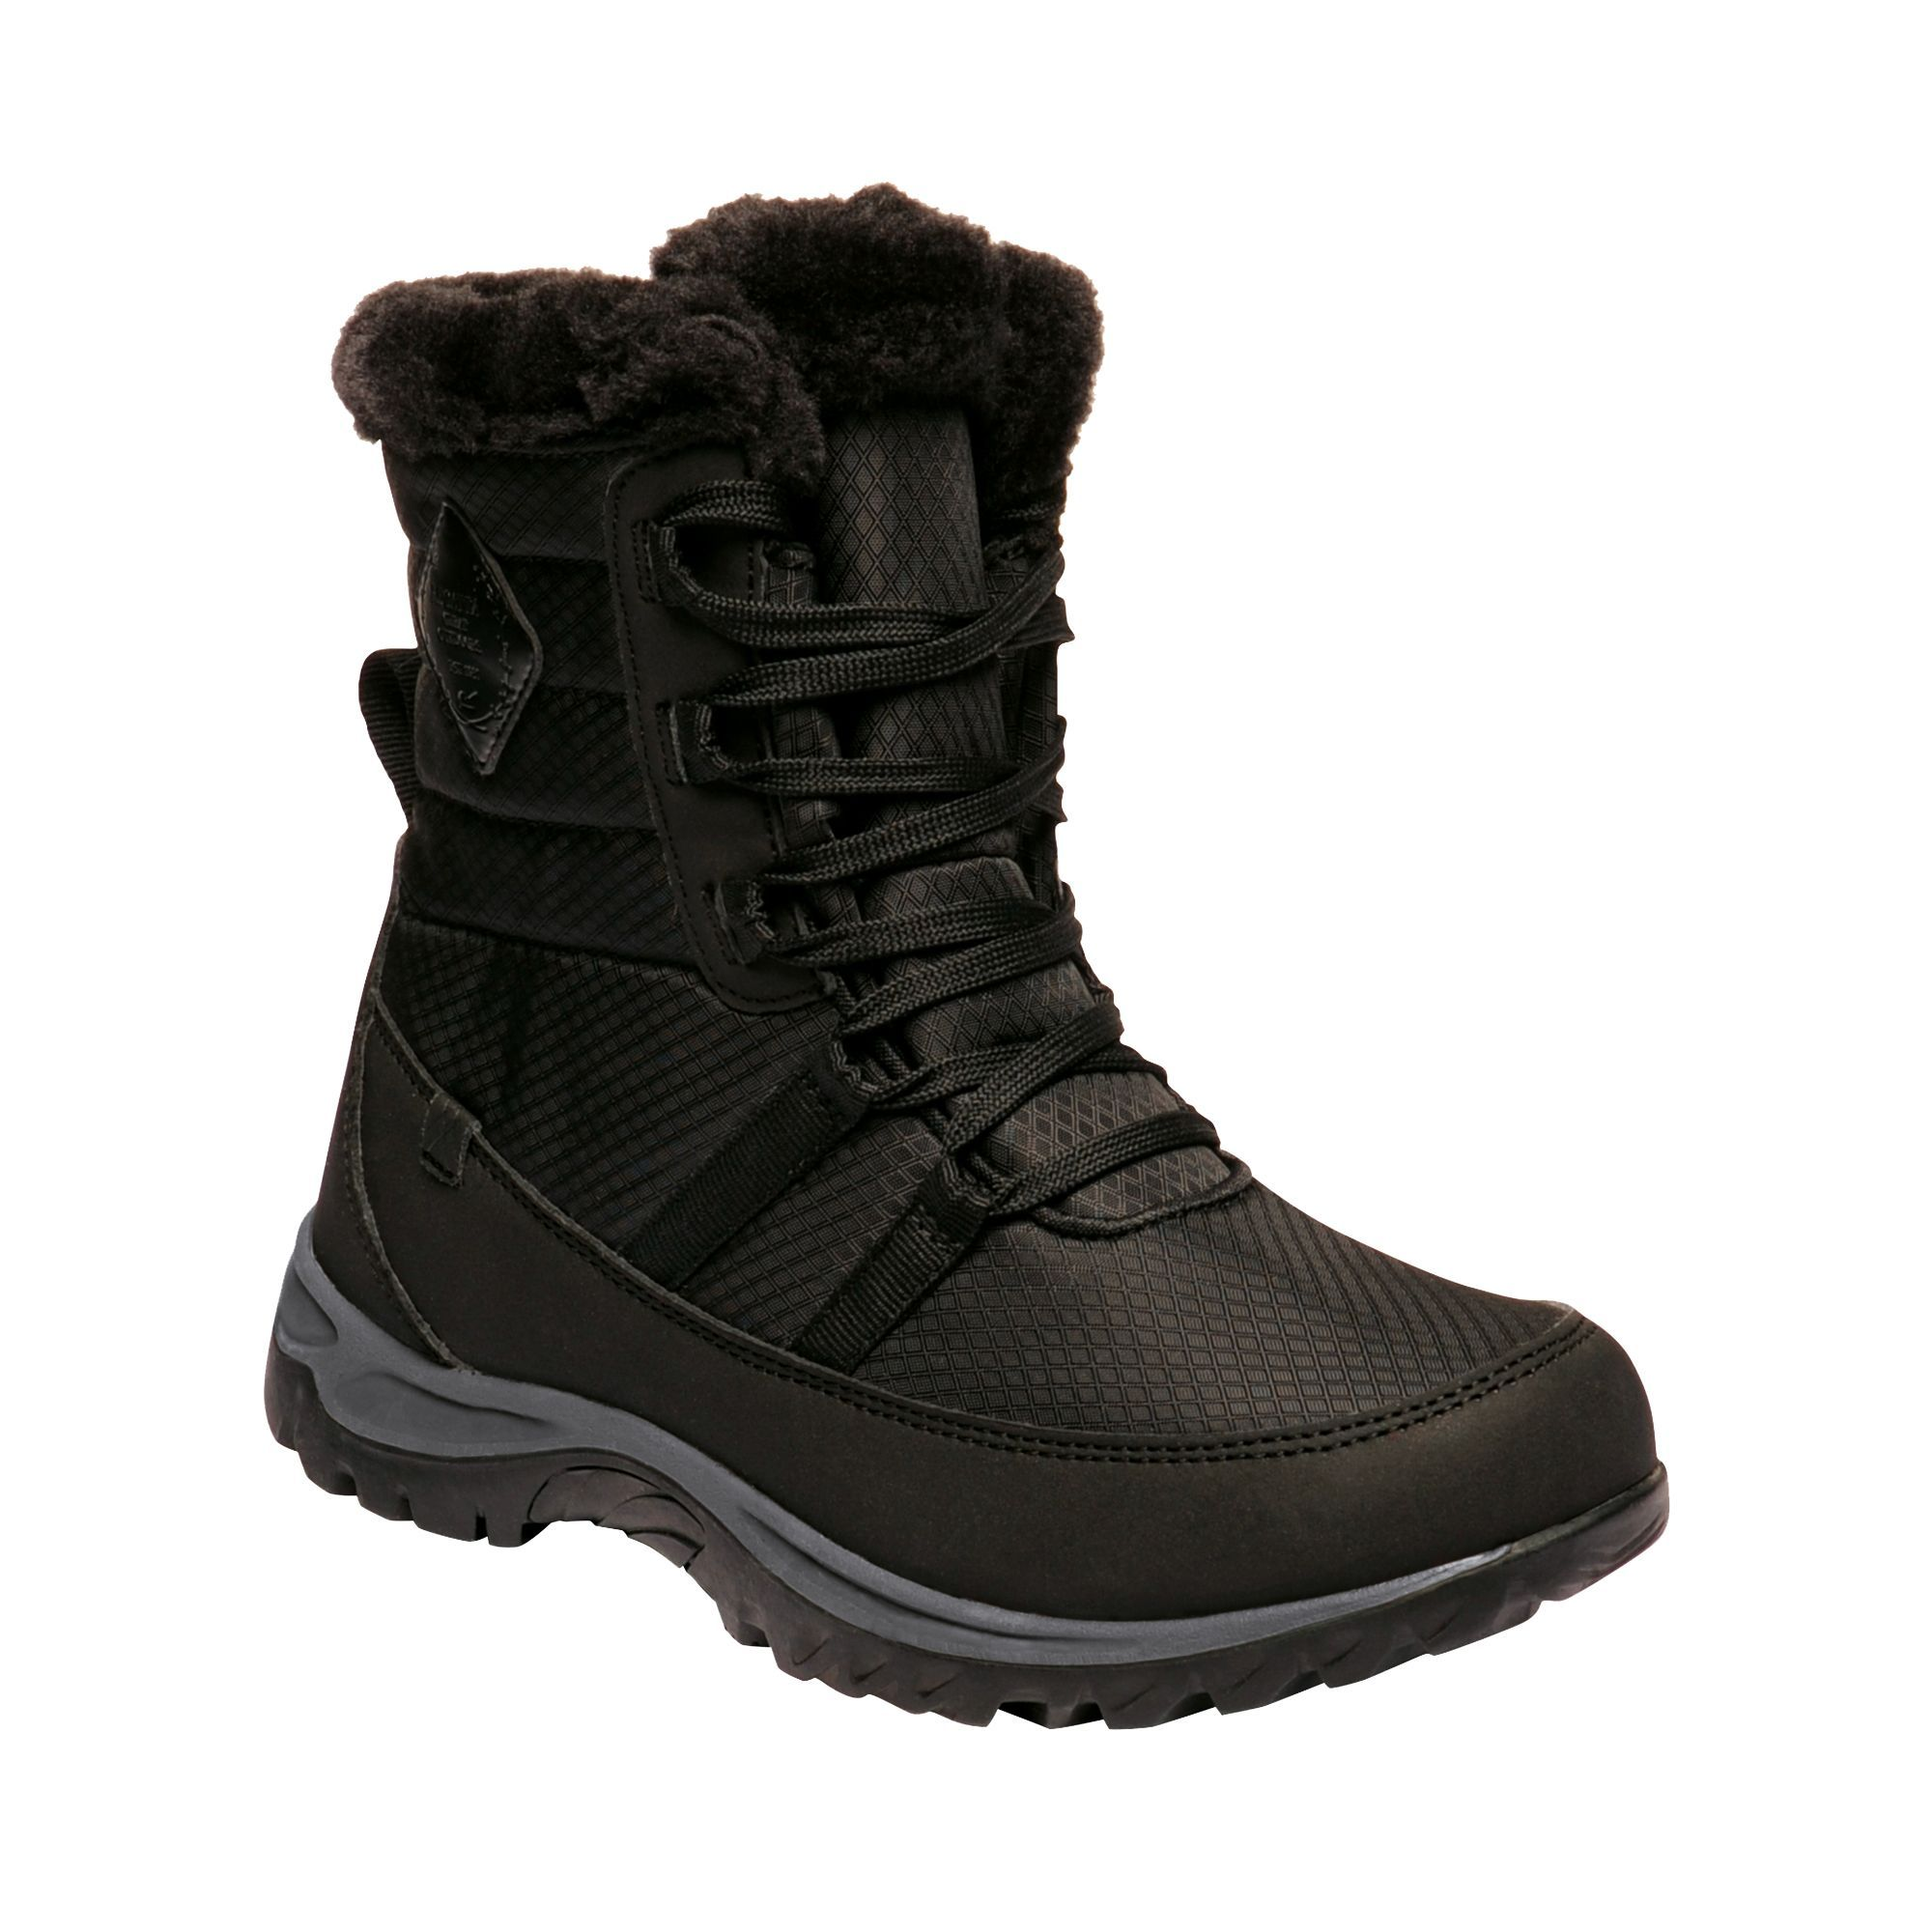 Regatta Great Outdoors Womens/Ladies Waverley Quilted Boots